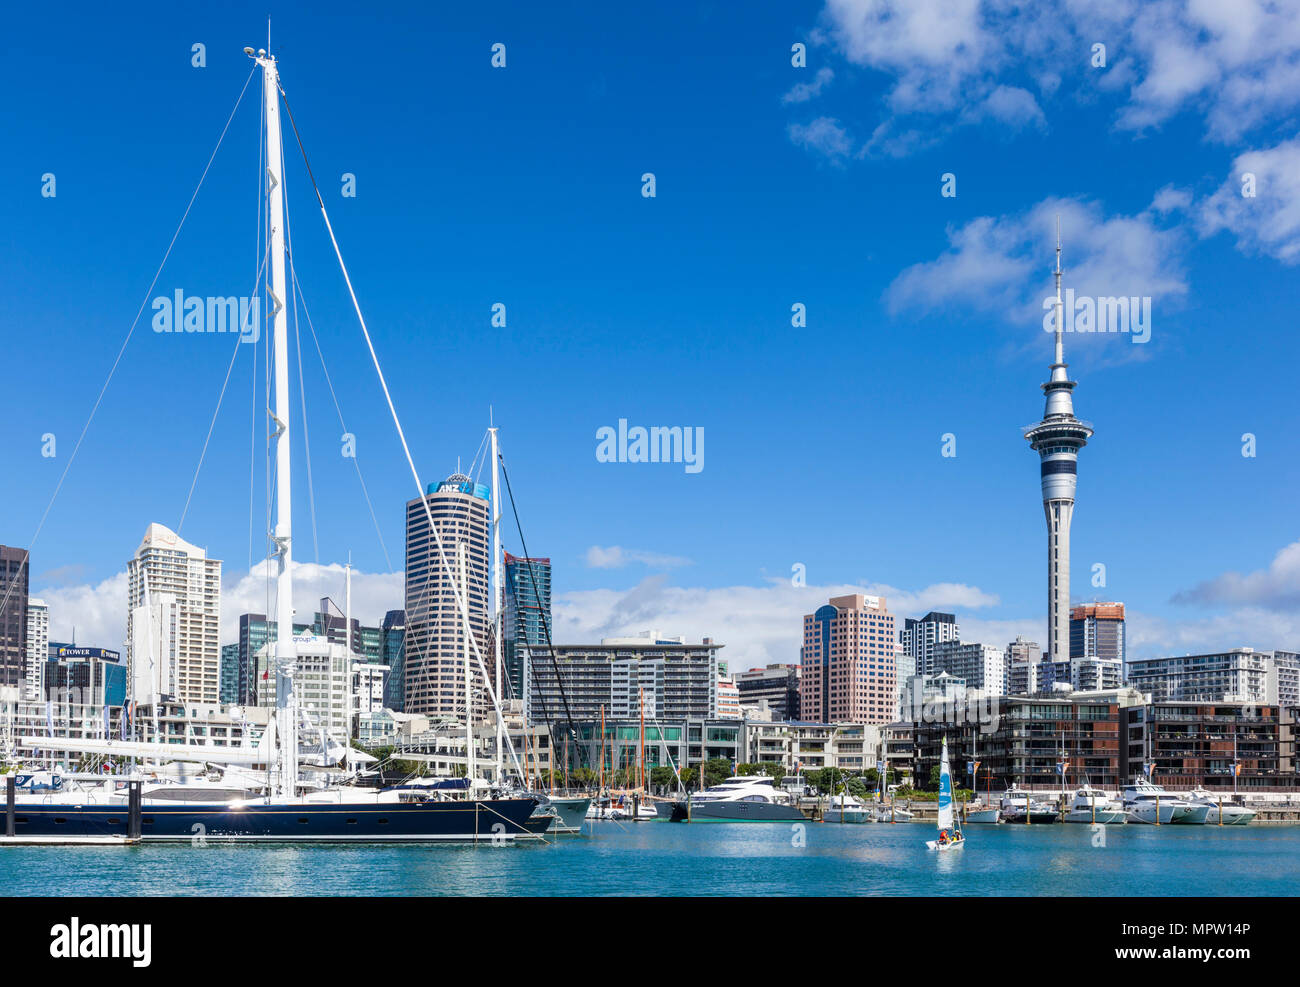 new zealand auckland new zealand north island auckland sky tower behind viaduct harbour area Auckland new zealand north island waterfront area nz - Stock Image